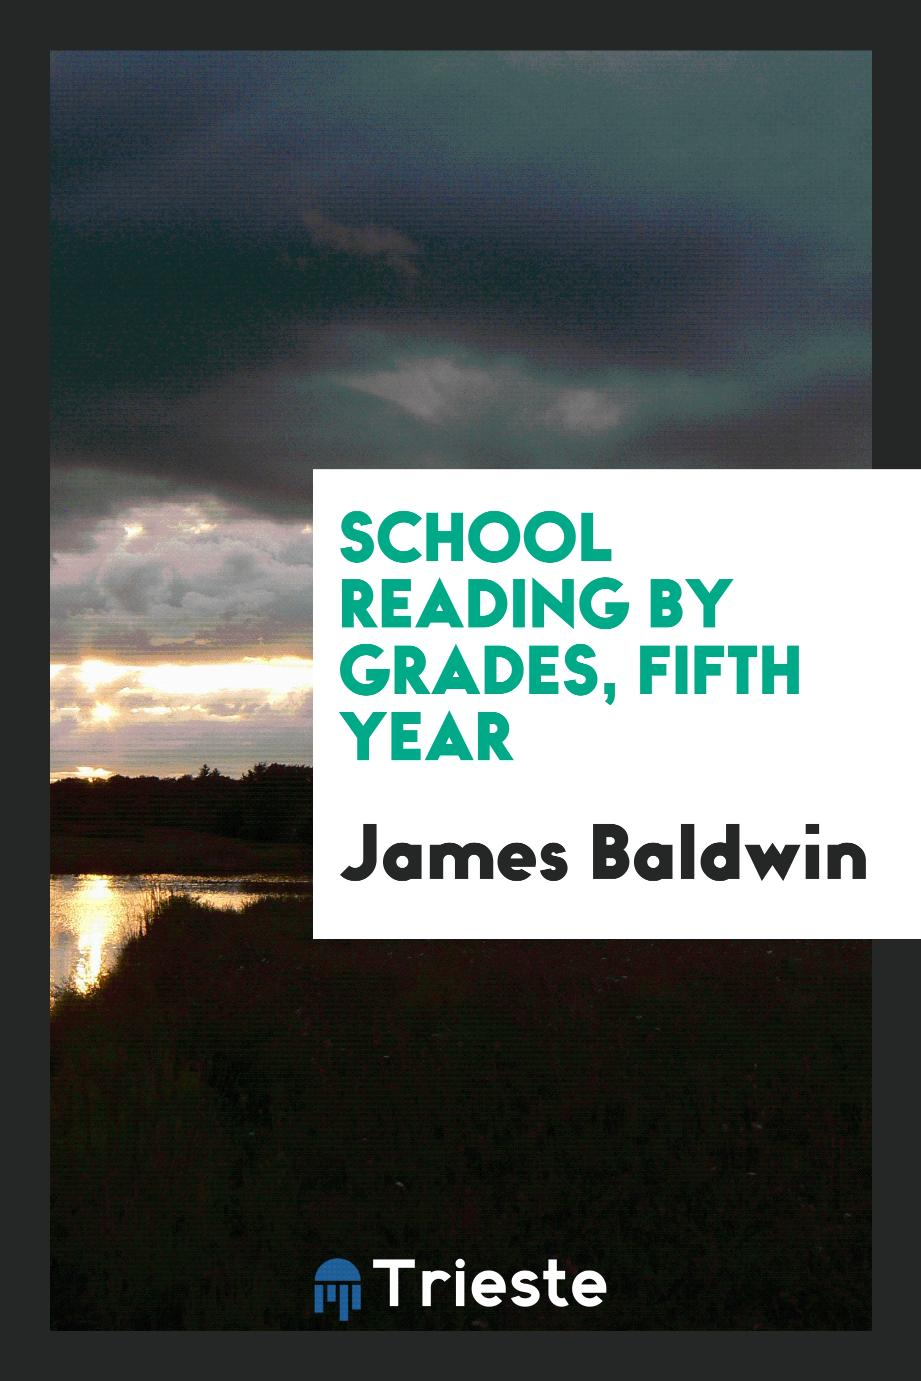 School Reading by Grades, Fifth Year